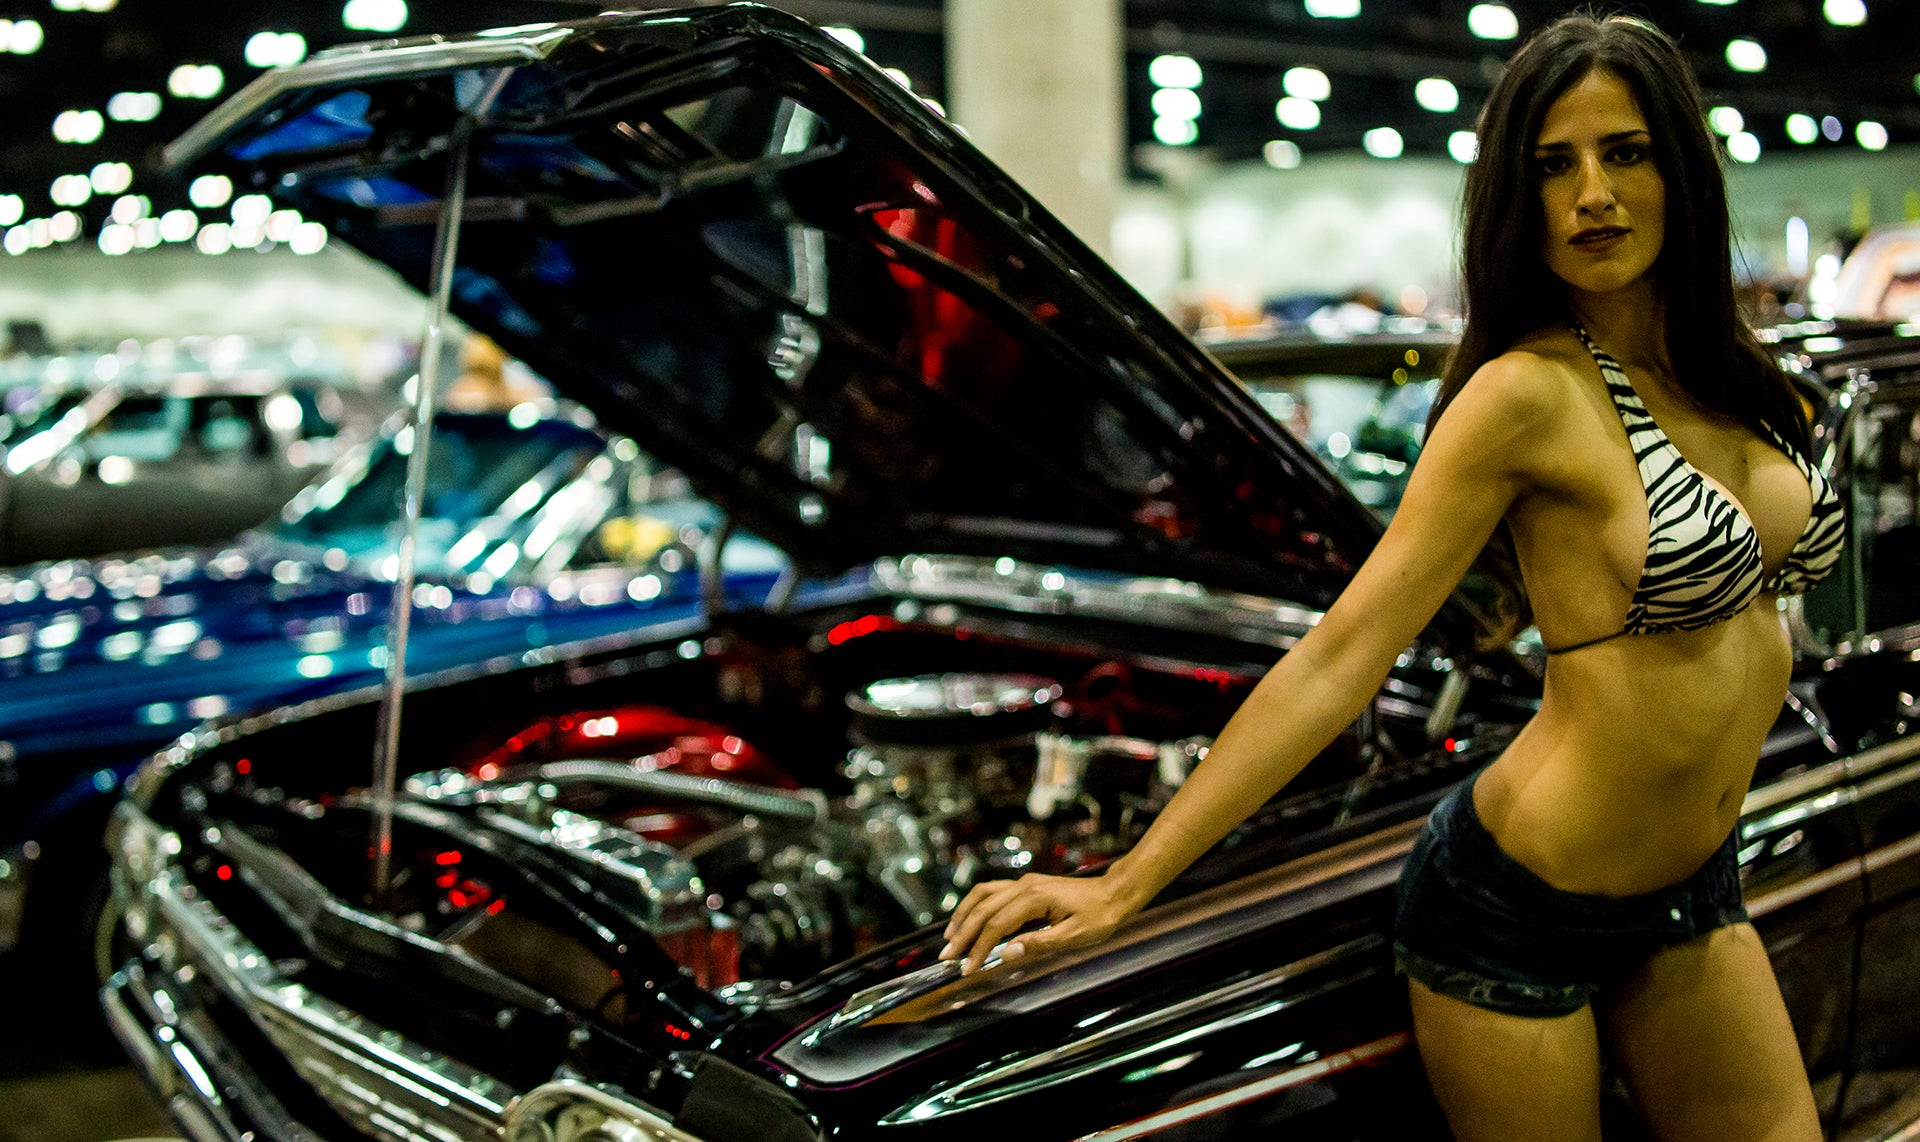 lovely model posing next to lowrider